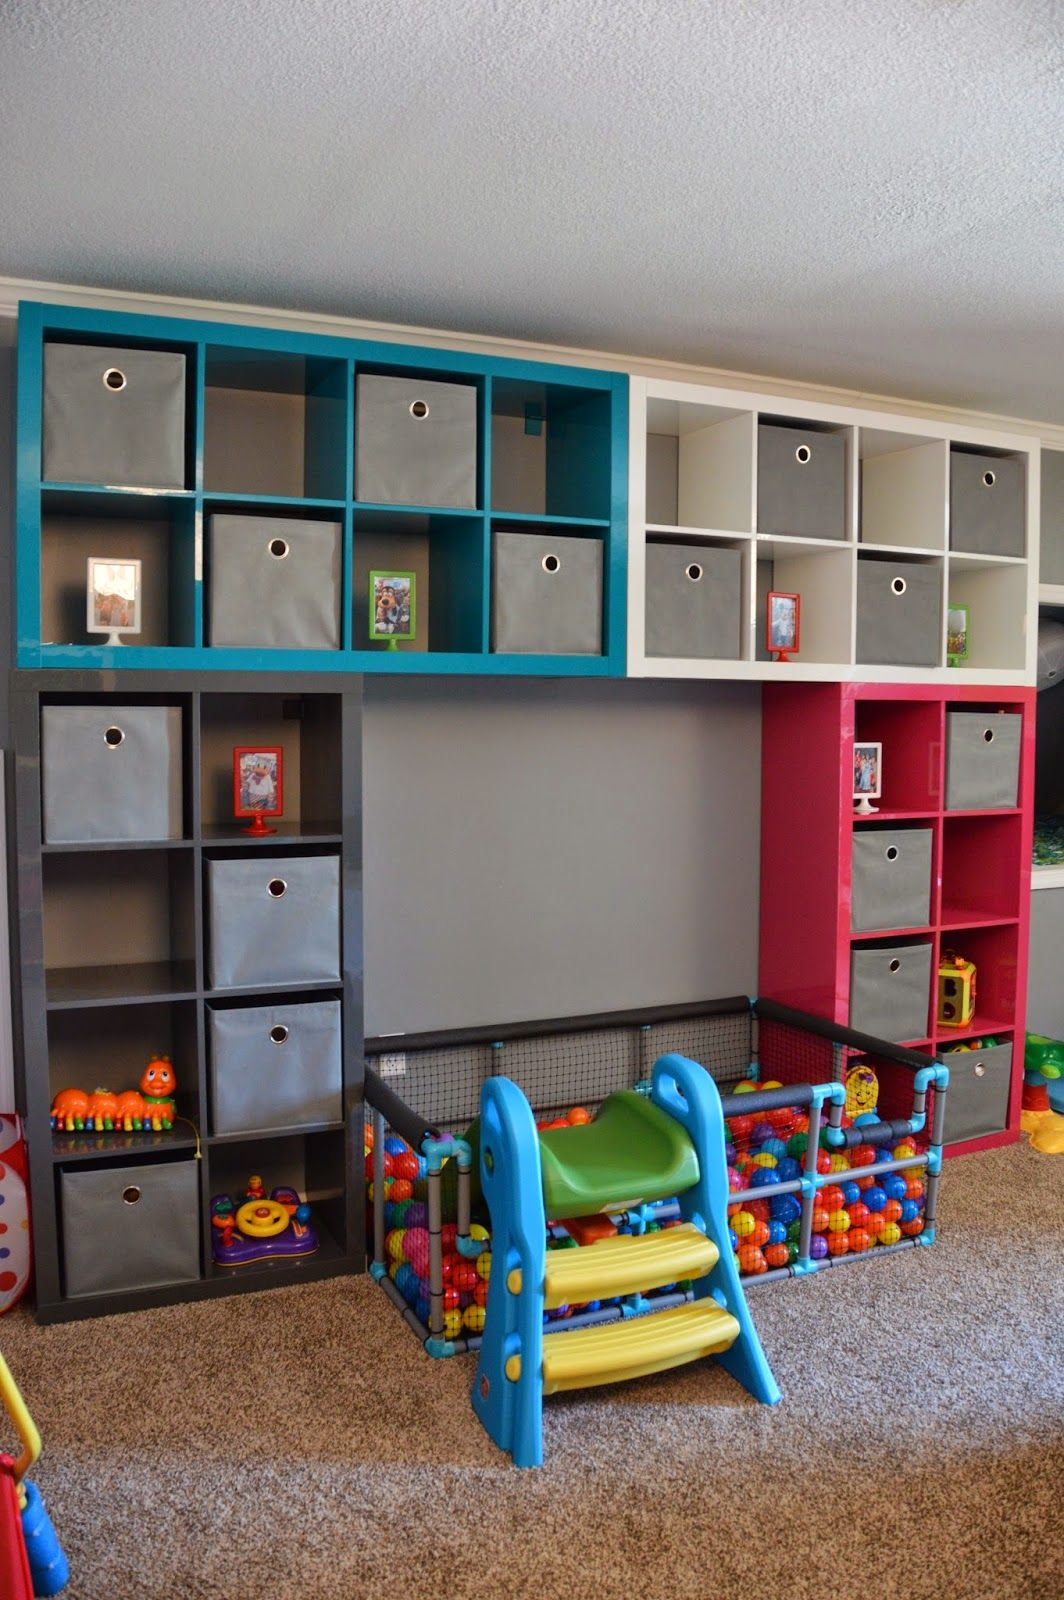 toy storage solutions for living room 7 1 storage ideas diy plans in a small space your 24714